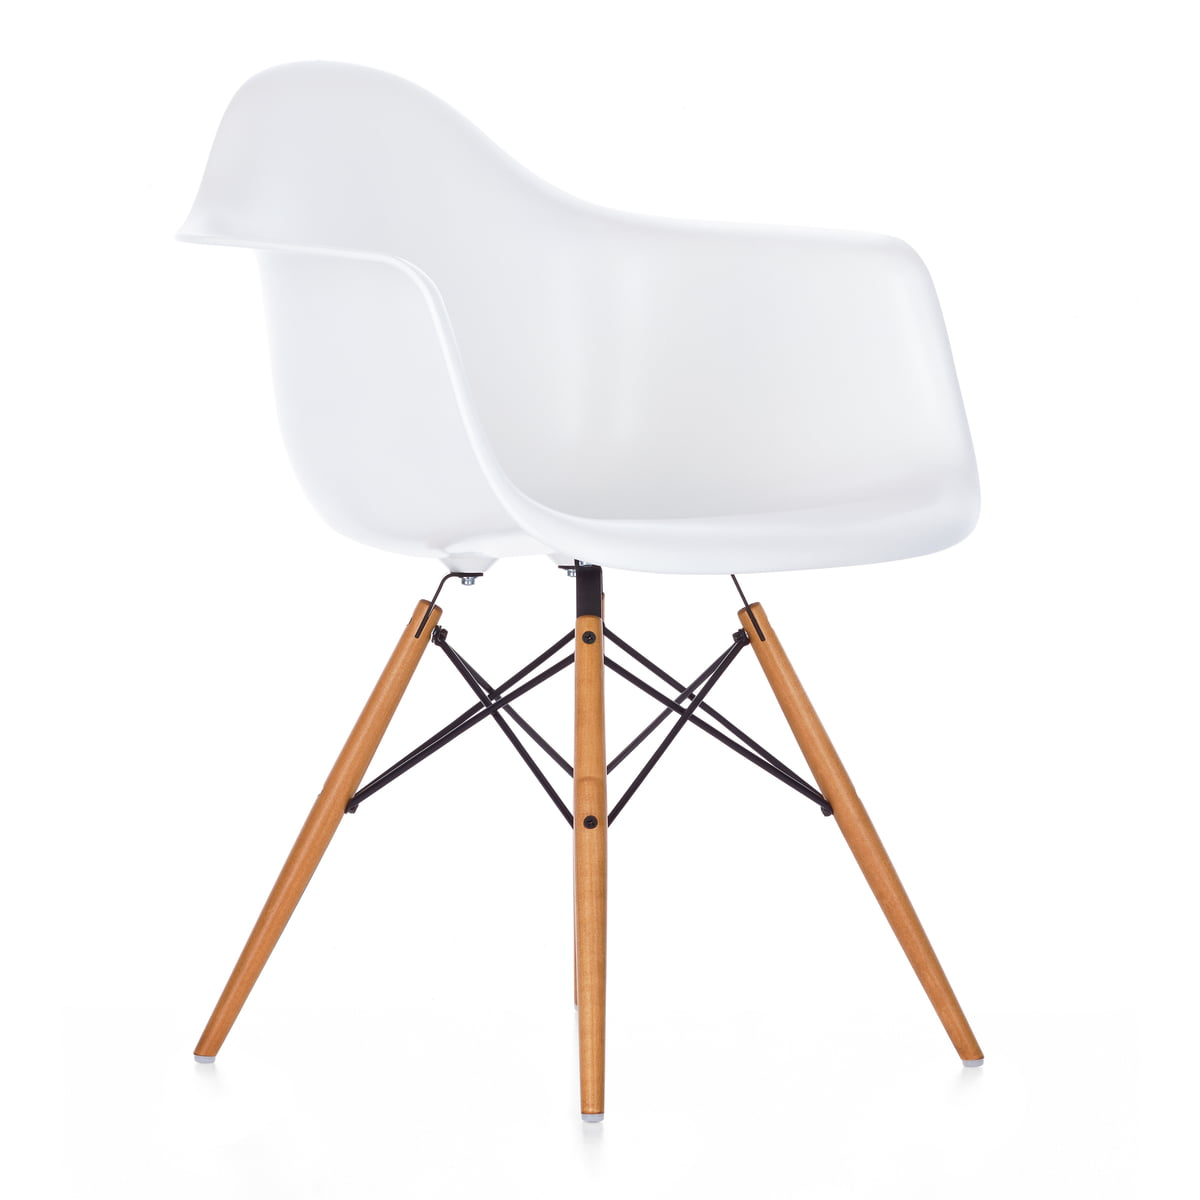 Vitra   Eames Plastic Armchair DAW  yellowish maple   white  felt glides. Eames DAW chair by Vitra in our Design Shop